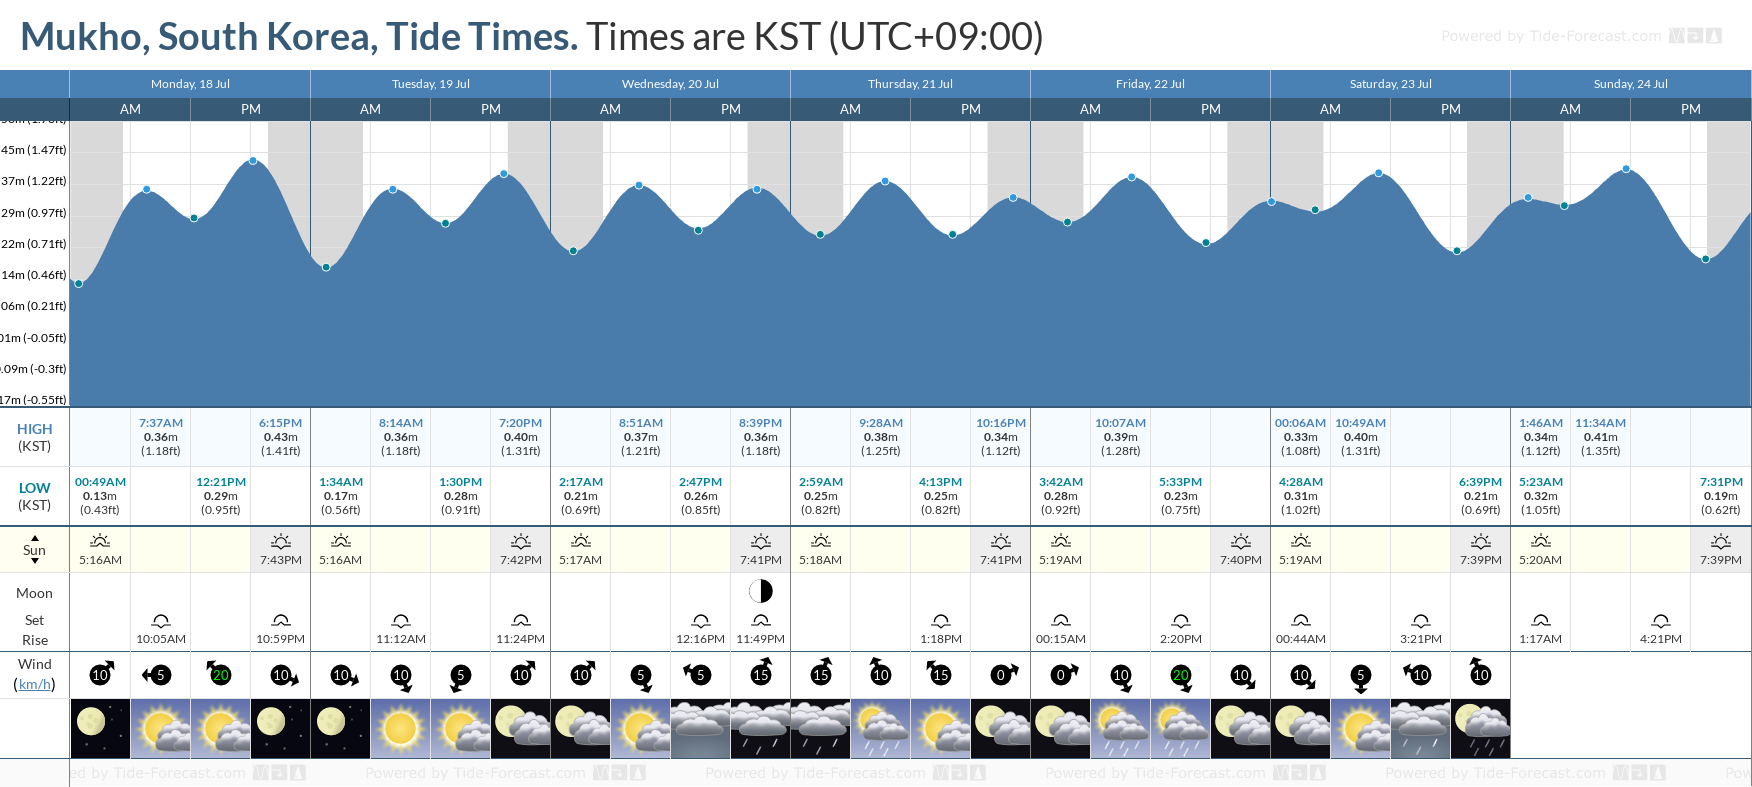 Mukho, South Korea Tide Chart including high and low tide tide times for the next 7 days